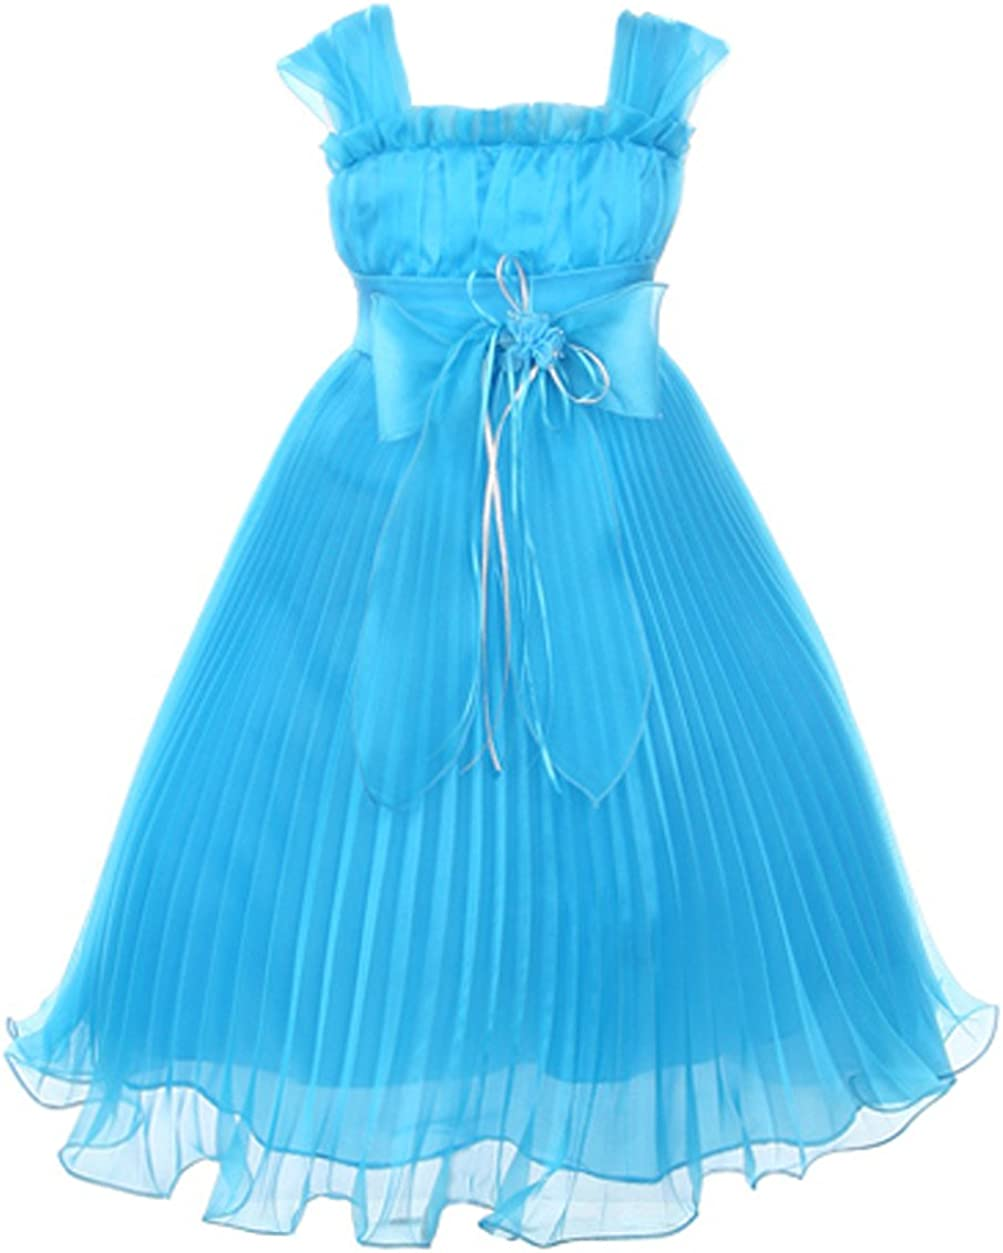 Cinderella Couture Girl's Turquoise Embroidery Organza Girl Dress